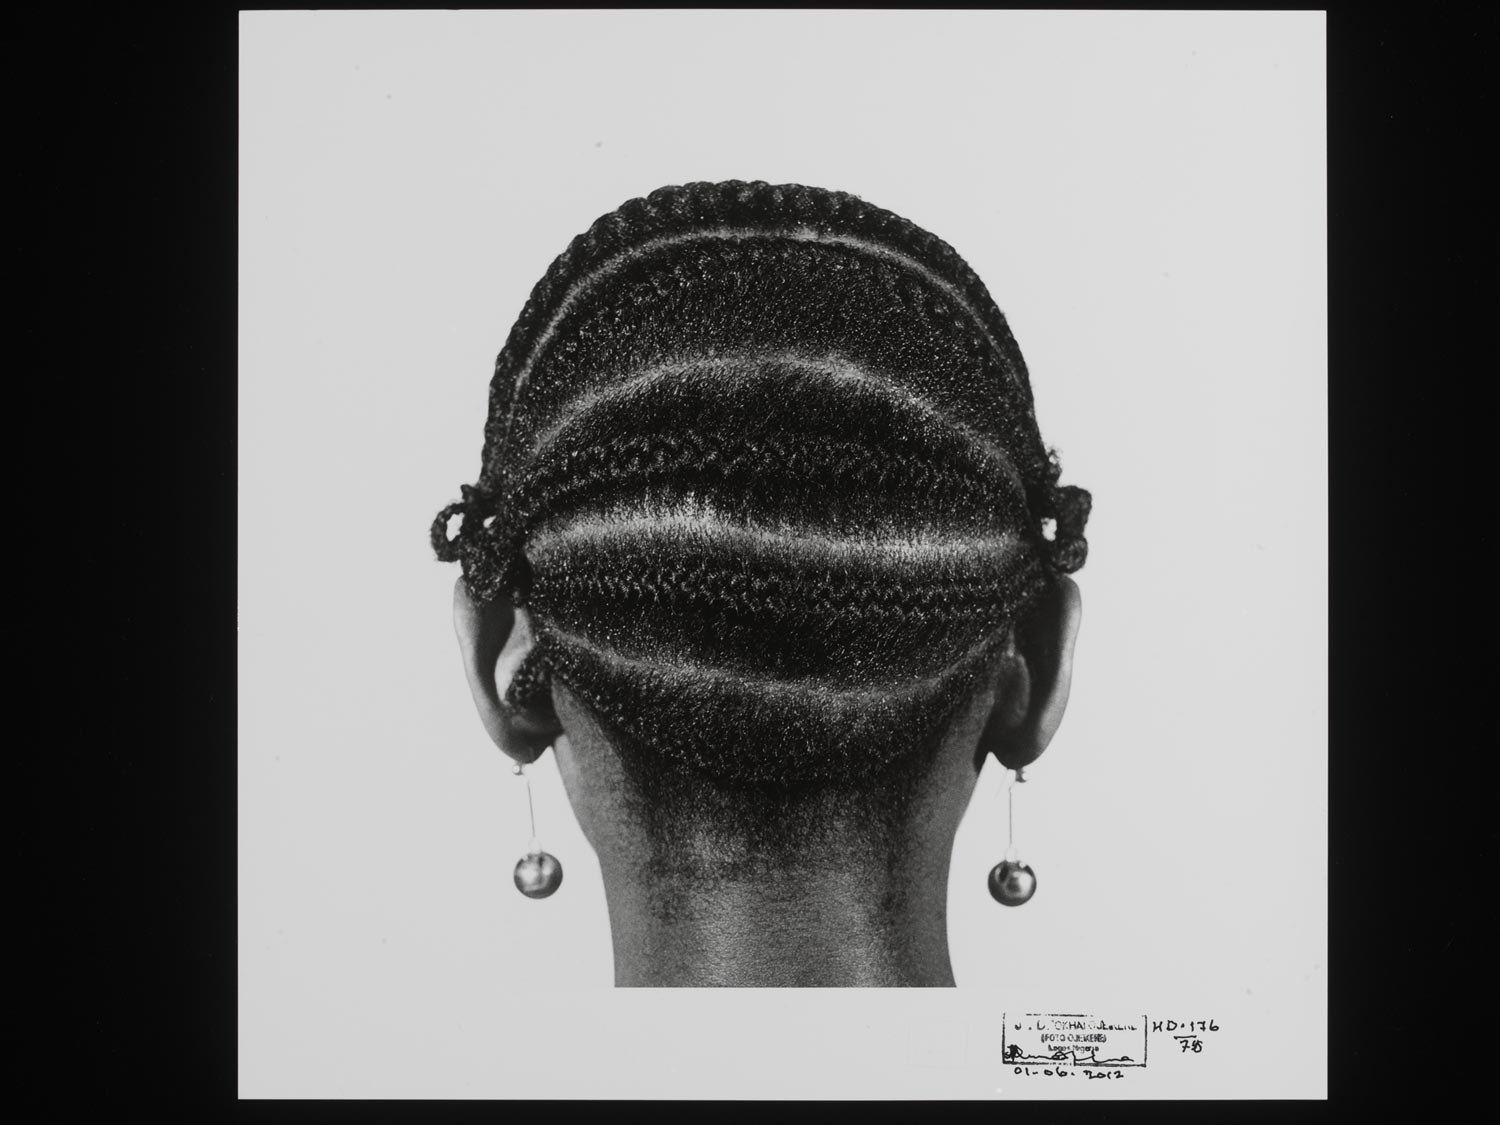 black and white photograph of the back of a woman's head with braids and hanging orb earrings